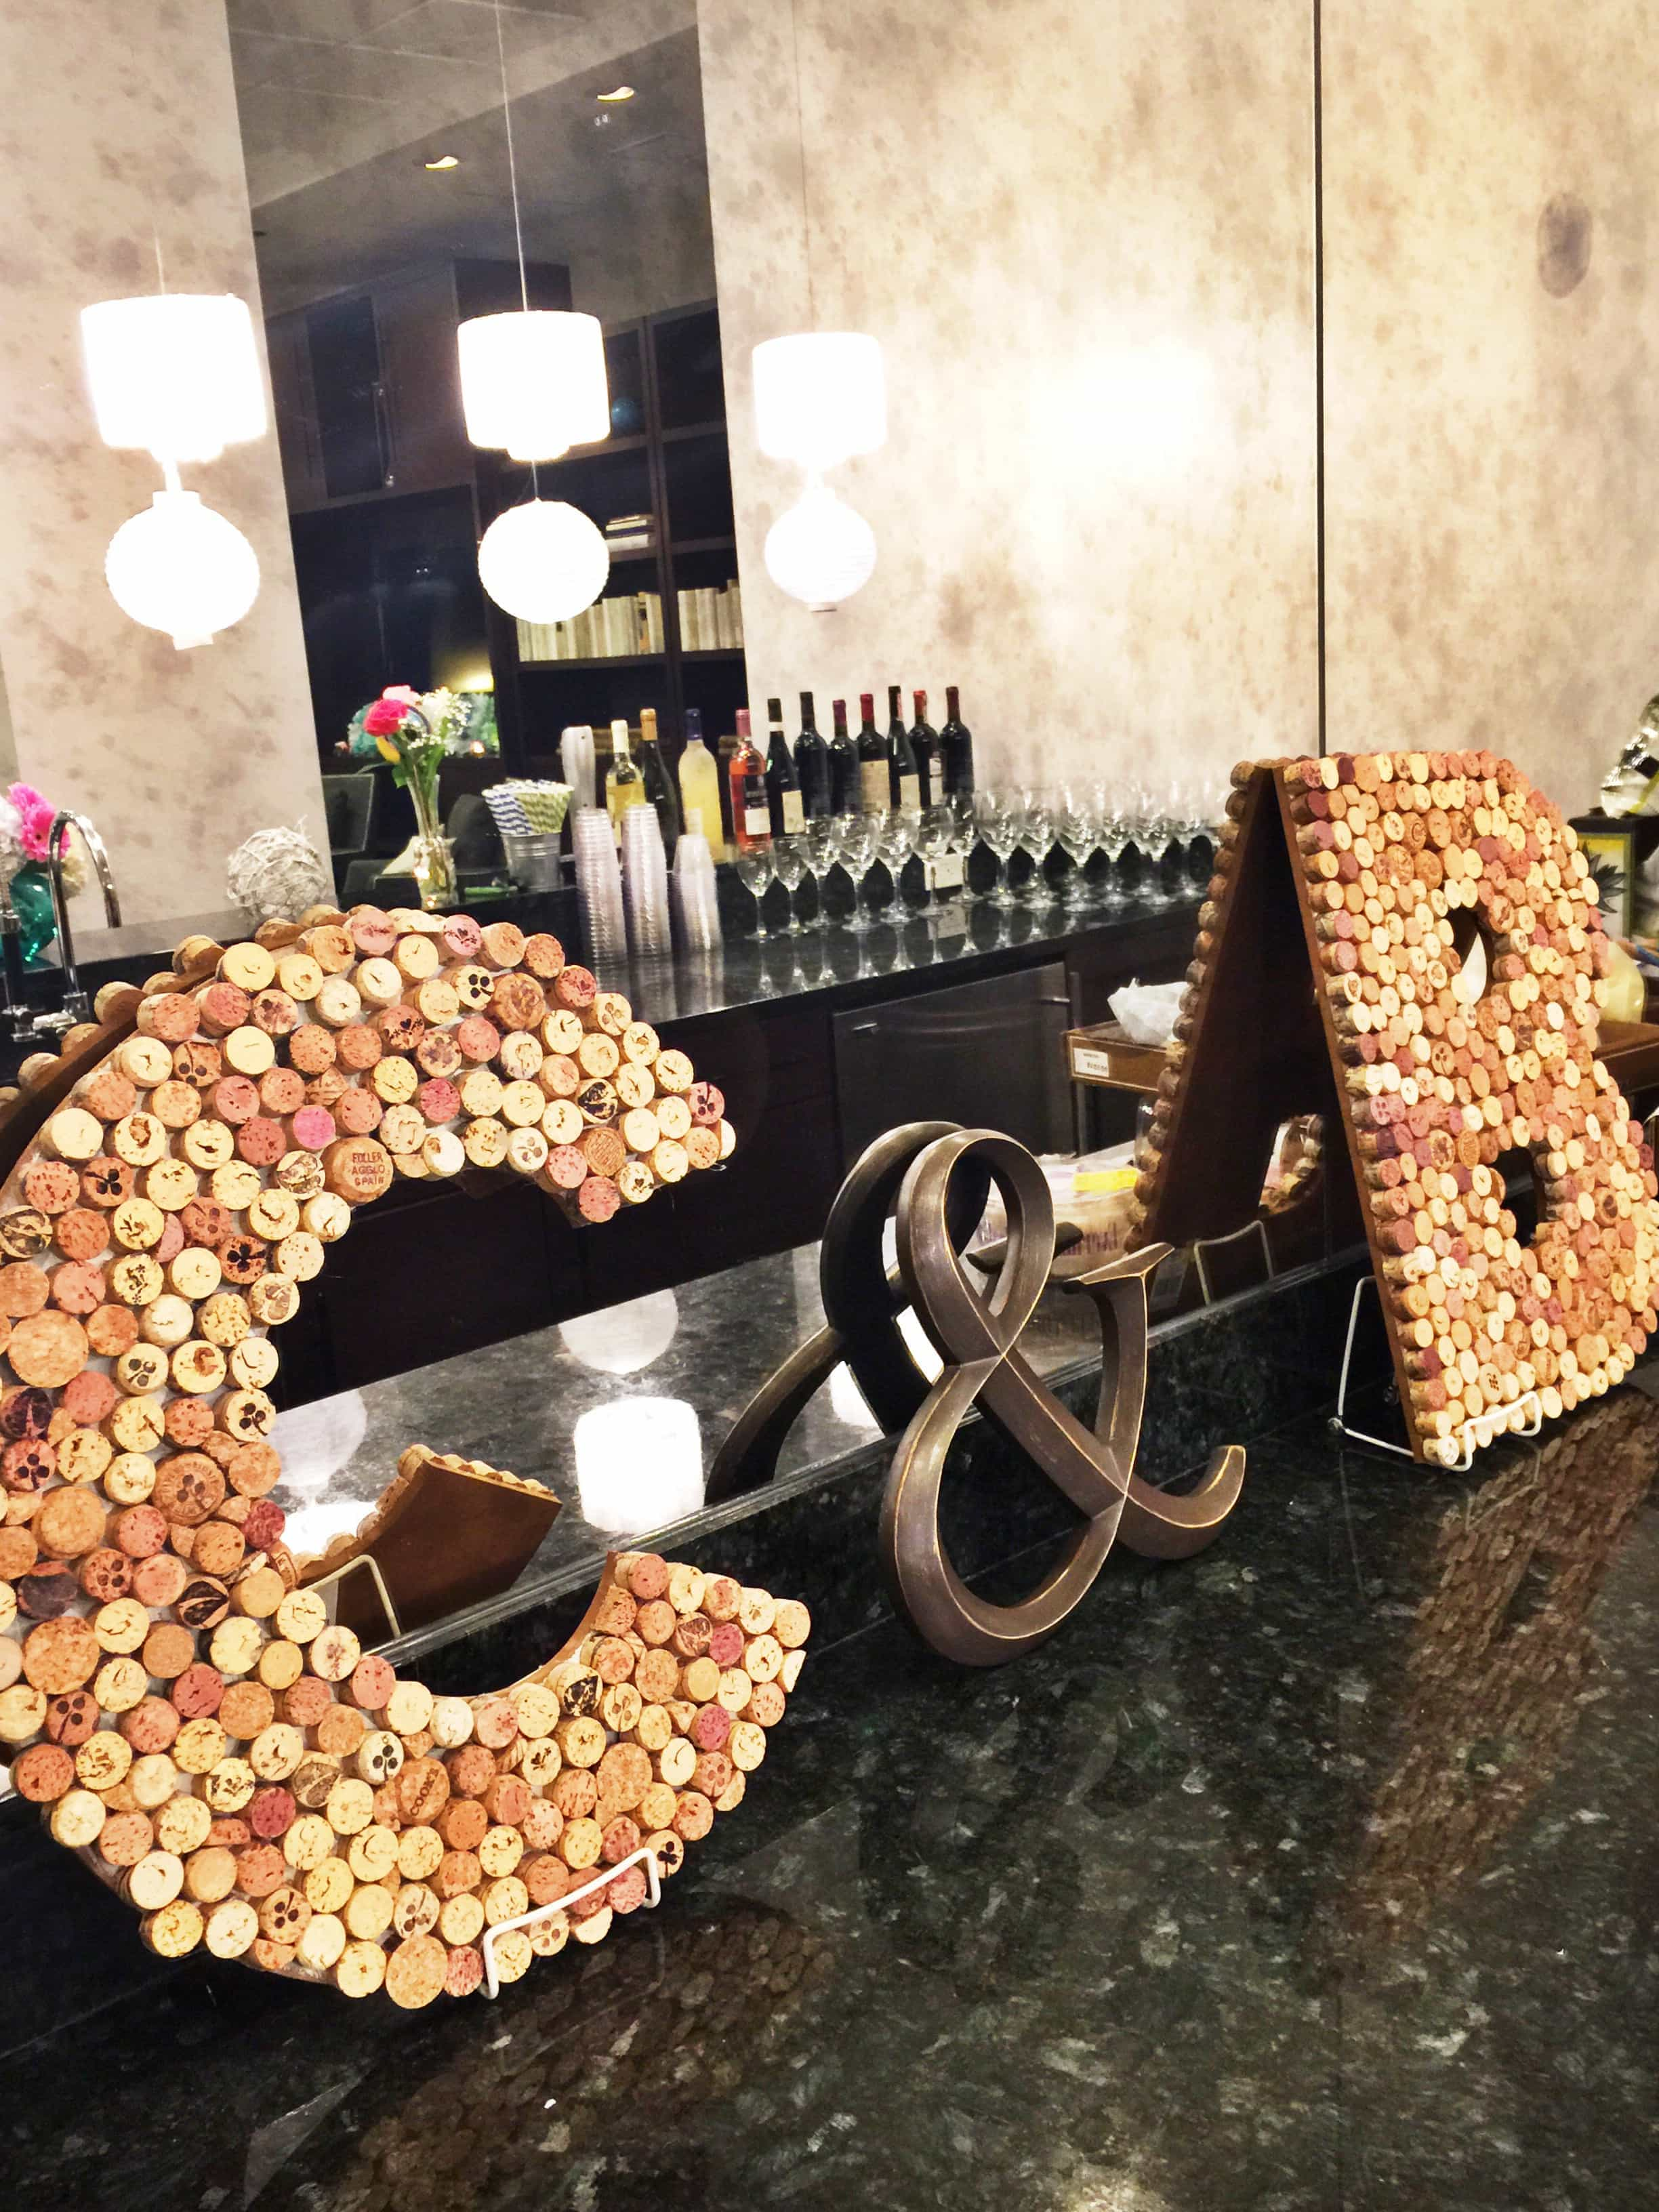 C & B written with multiple corks